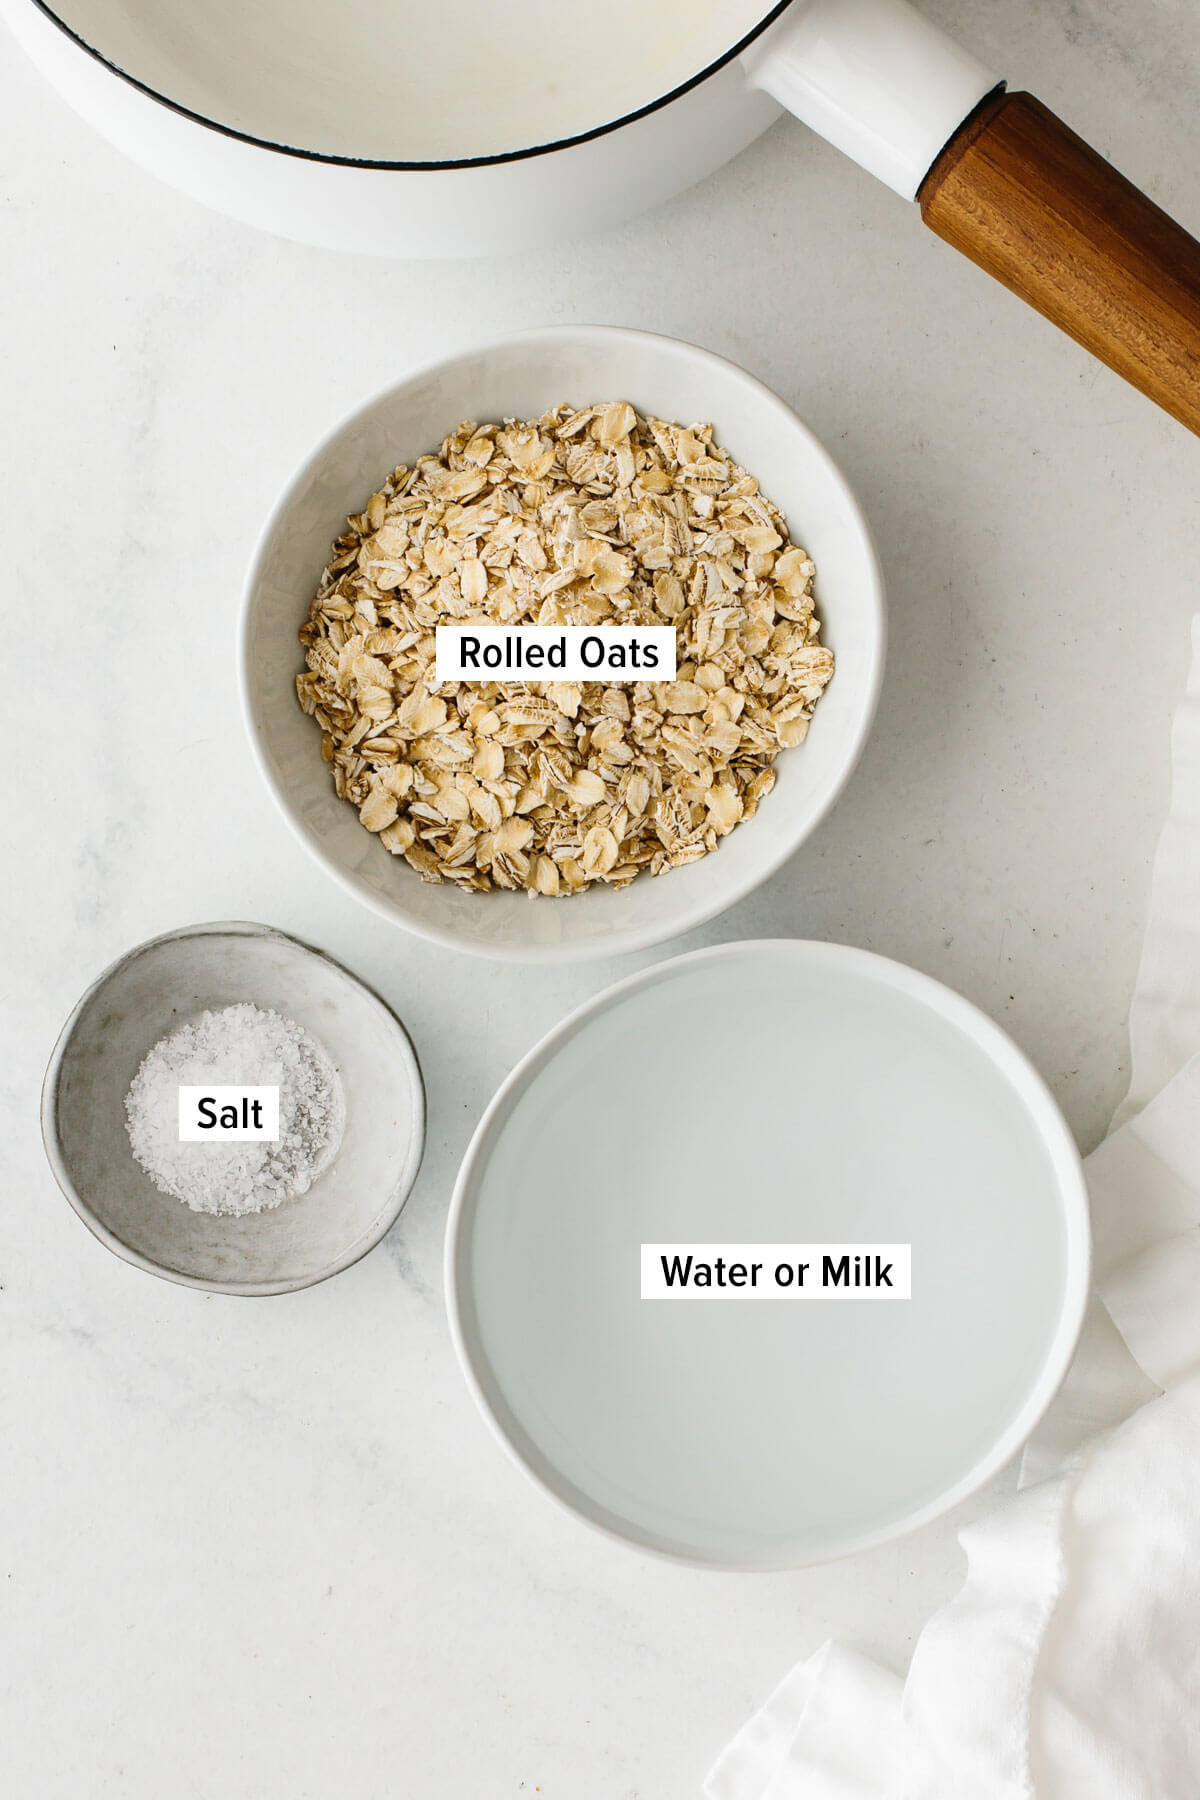 Ingredients for oatmeal laying on a table